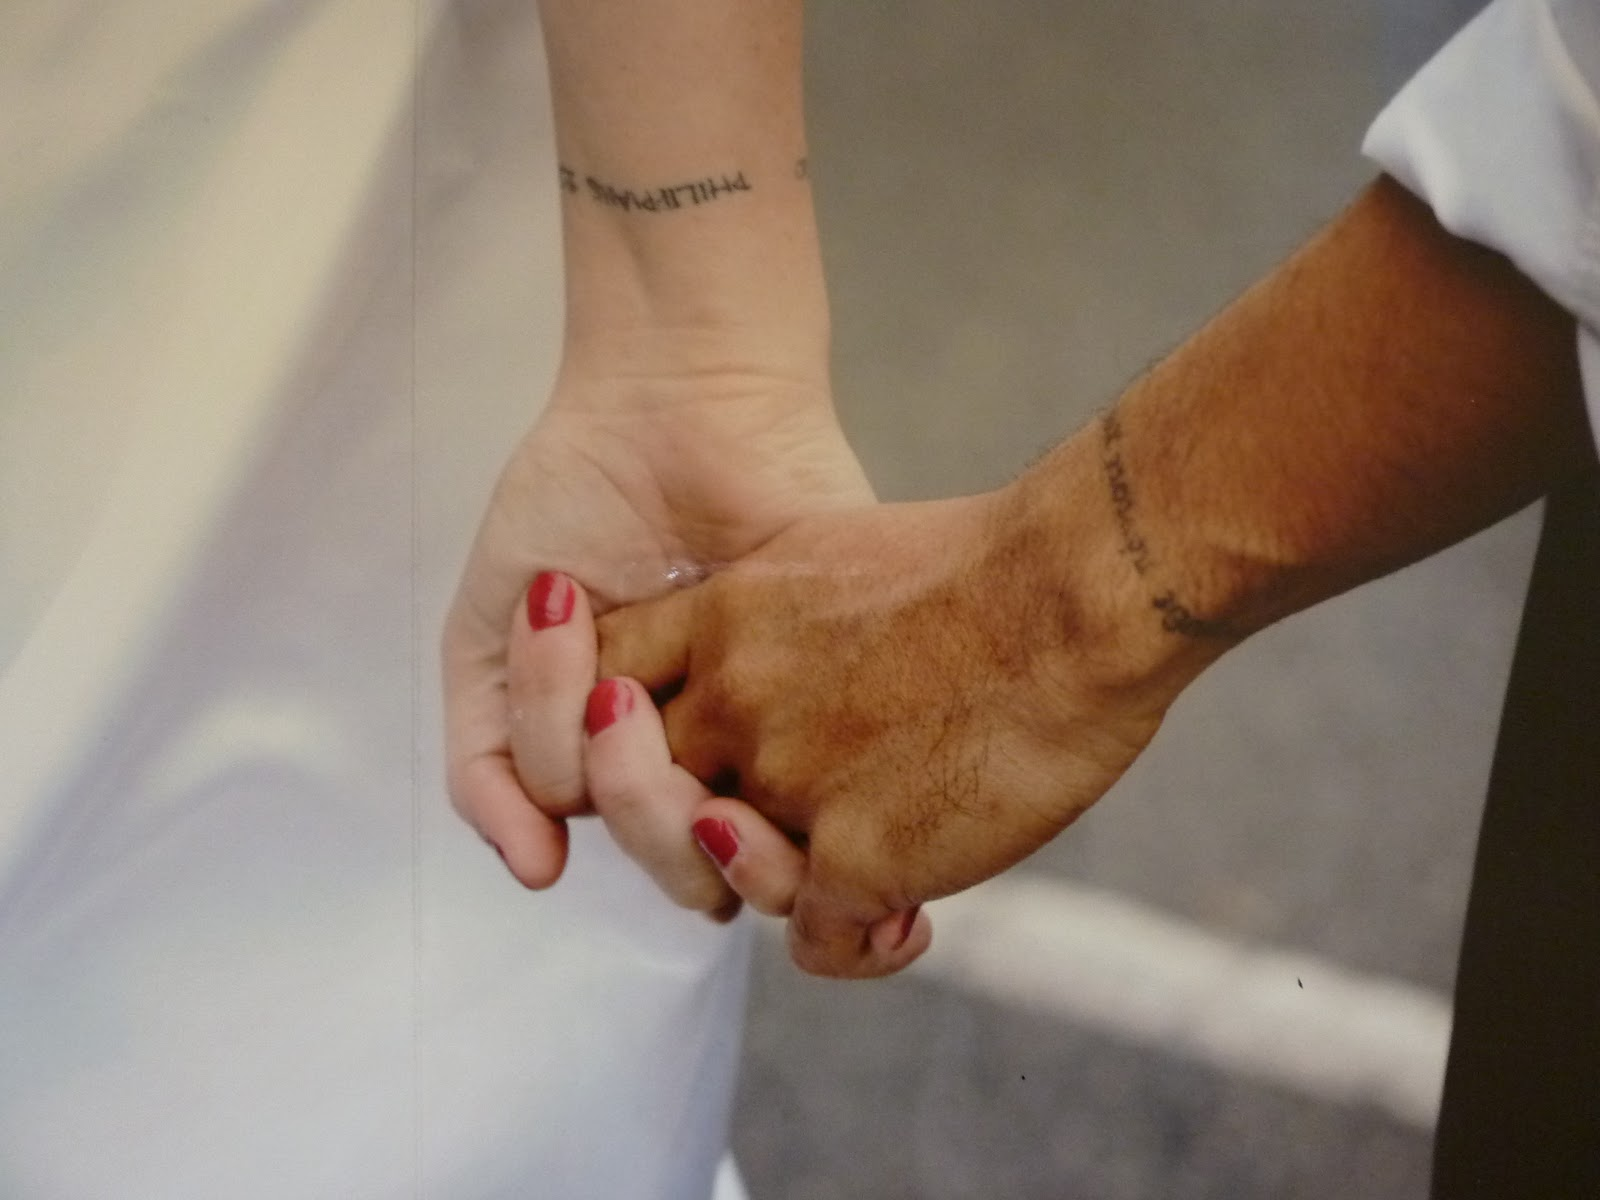 Couple Tattoos Bing Images Pinpoint